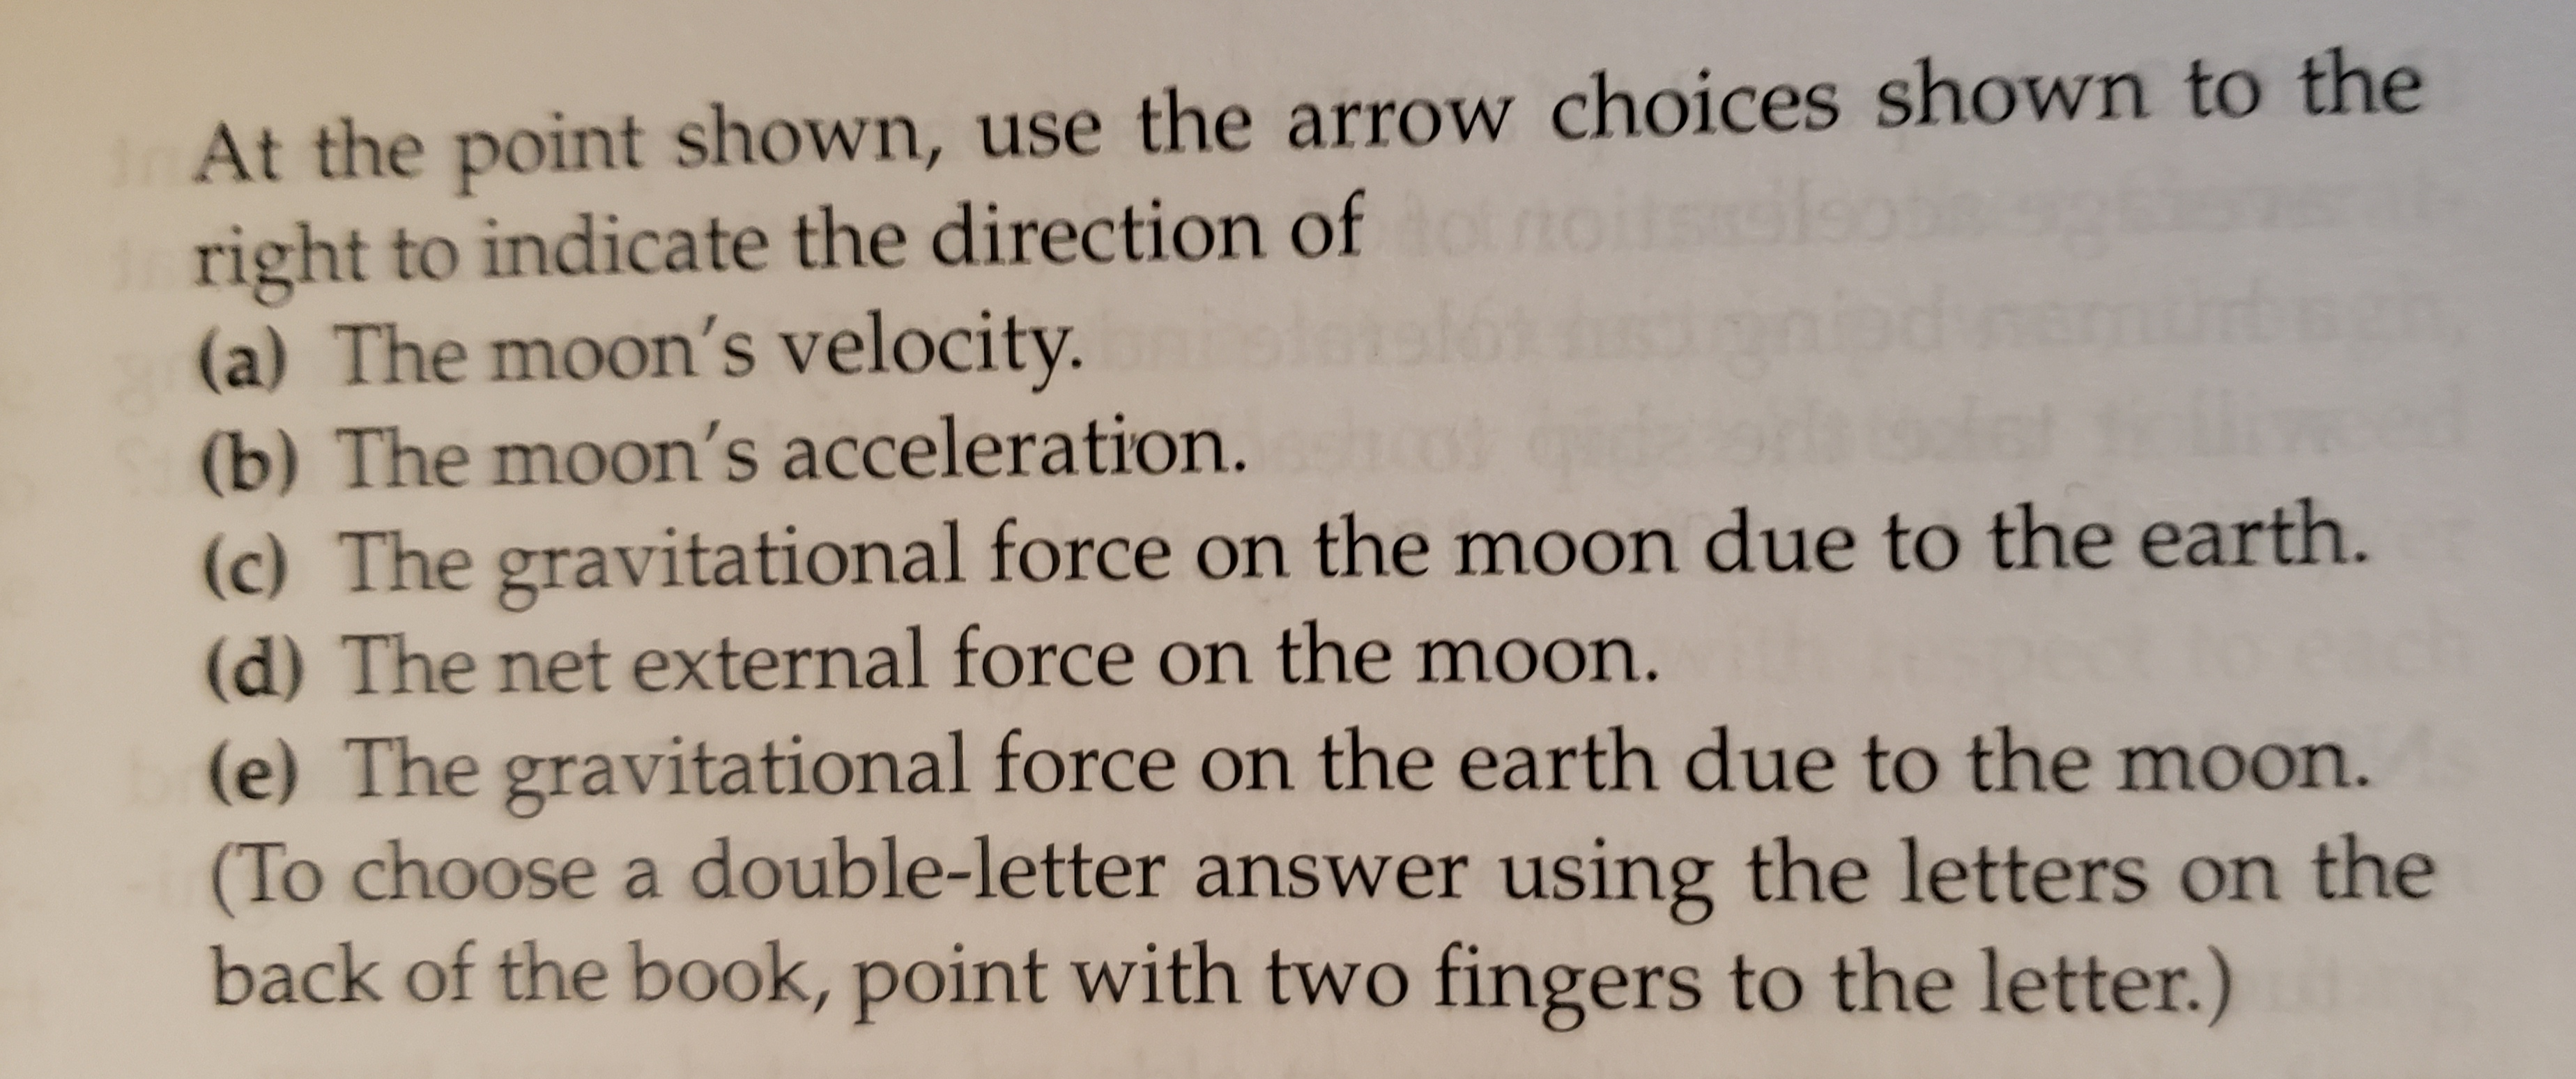 InAt the point shown, use the arrow choices shown to the right to indicate the direction of to (a) The moon's velocity. (b) The moon's acceleration. (c) The gravitational force on the moon due to the earth. (d) The net external force on the moon. (e) The gravitational force on the earth due to the moon. (To choose a double-letter answer usirng the letters on the back of the book, point with two fingers to the letter.) Sls 6